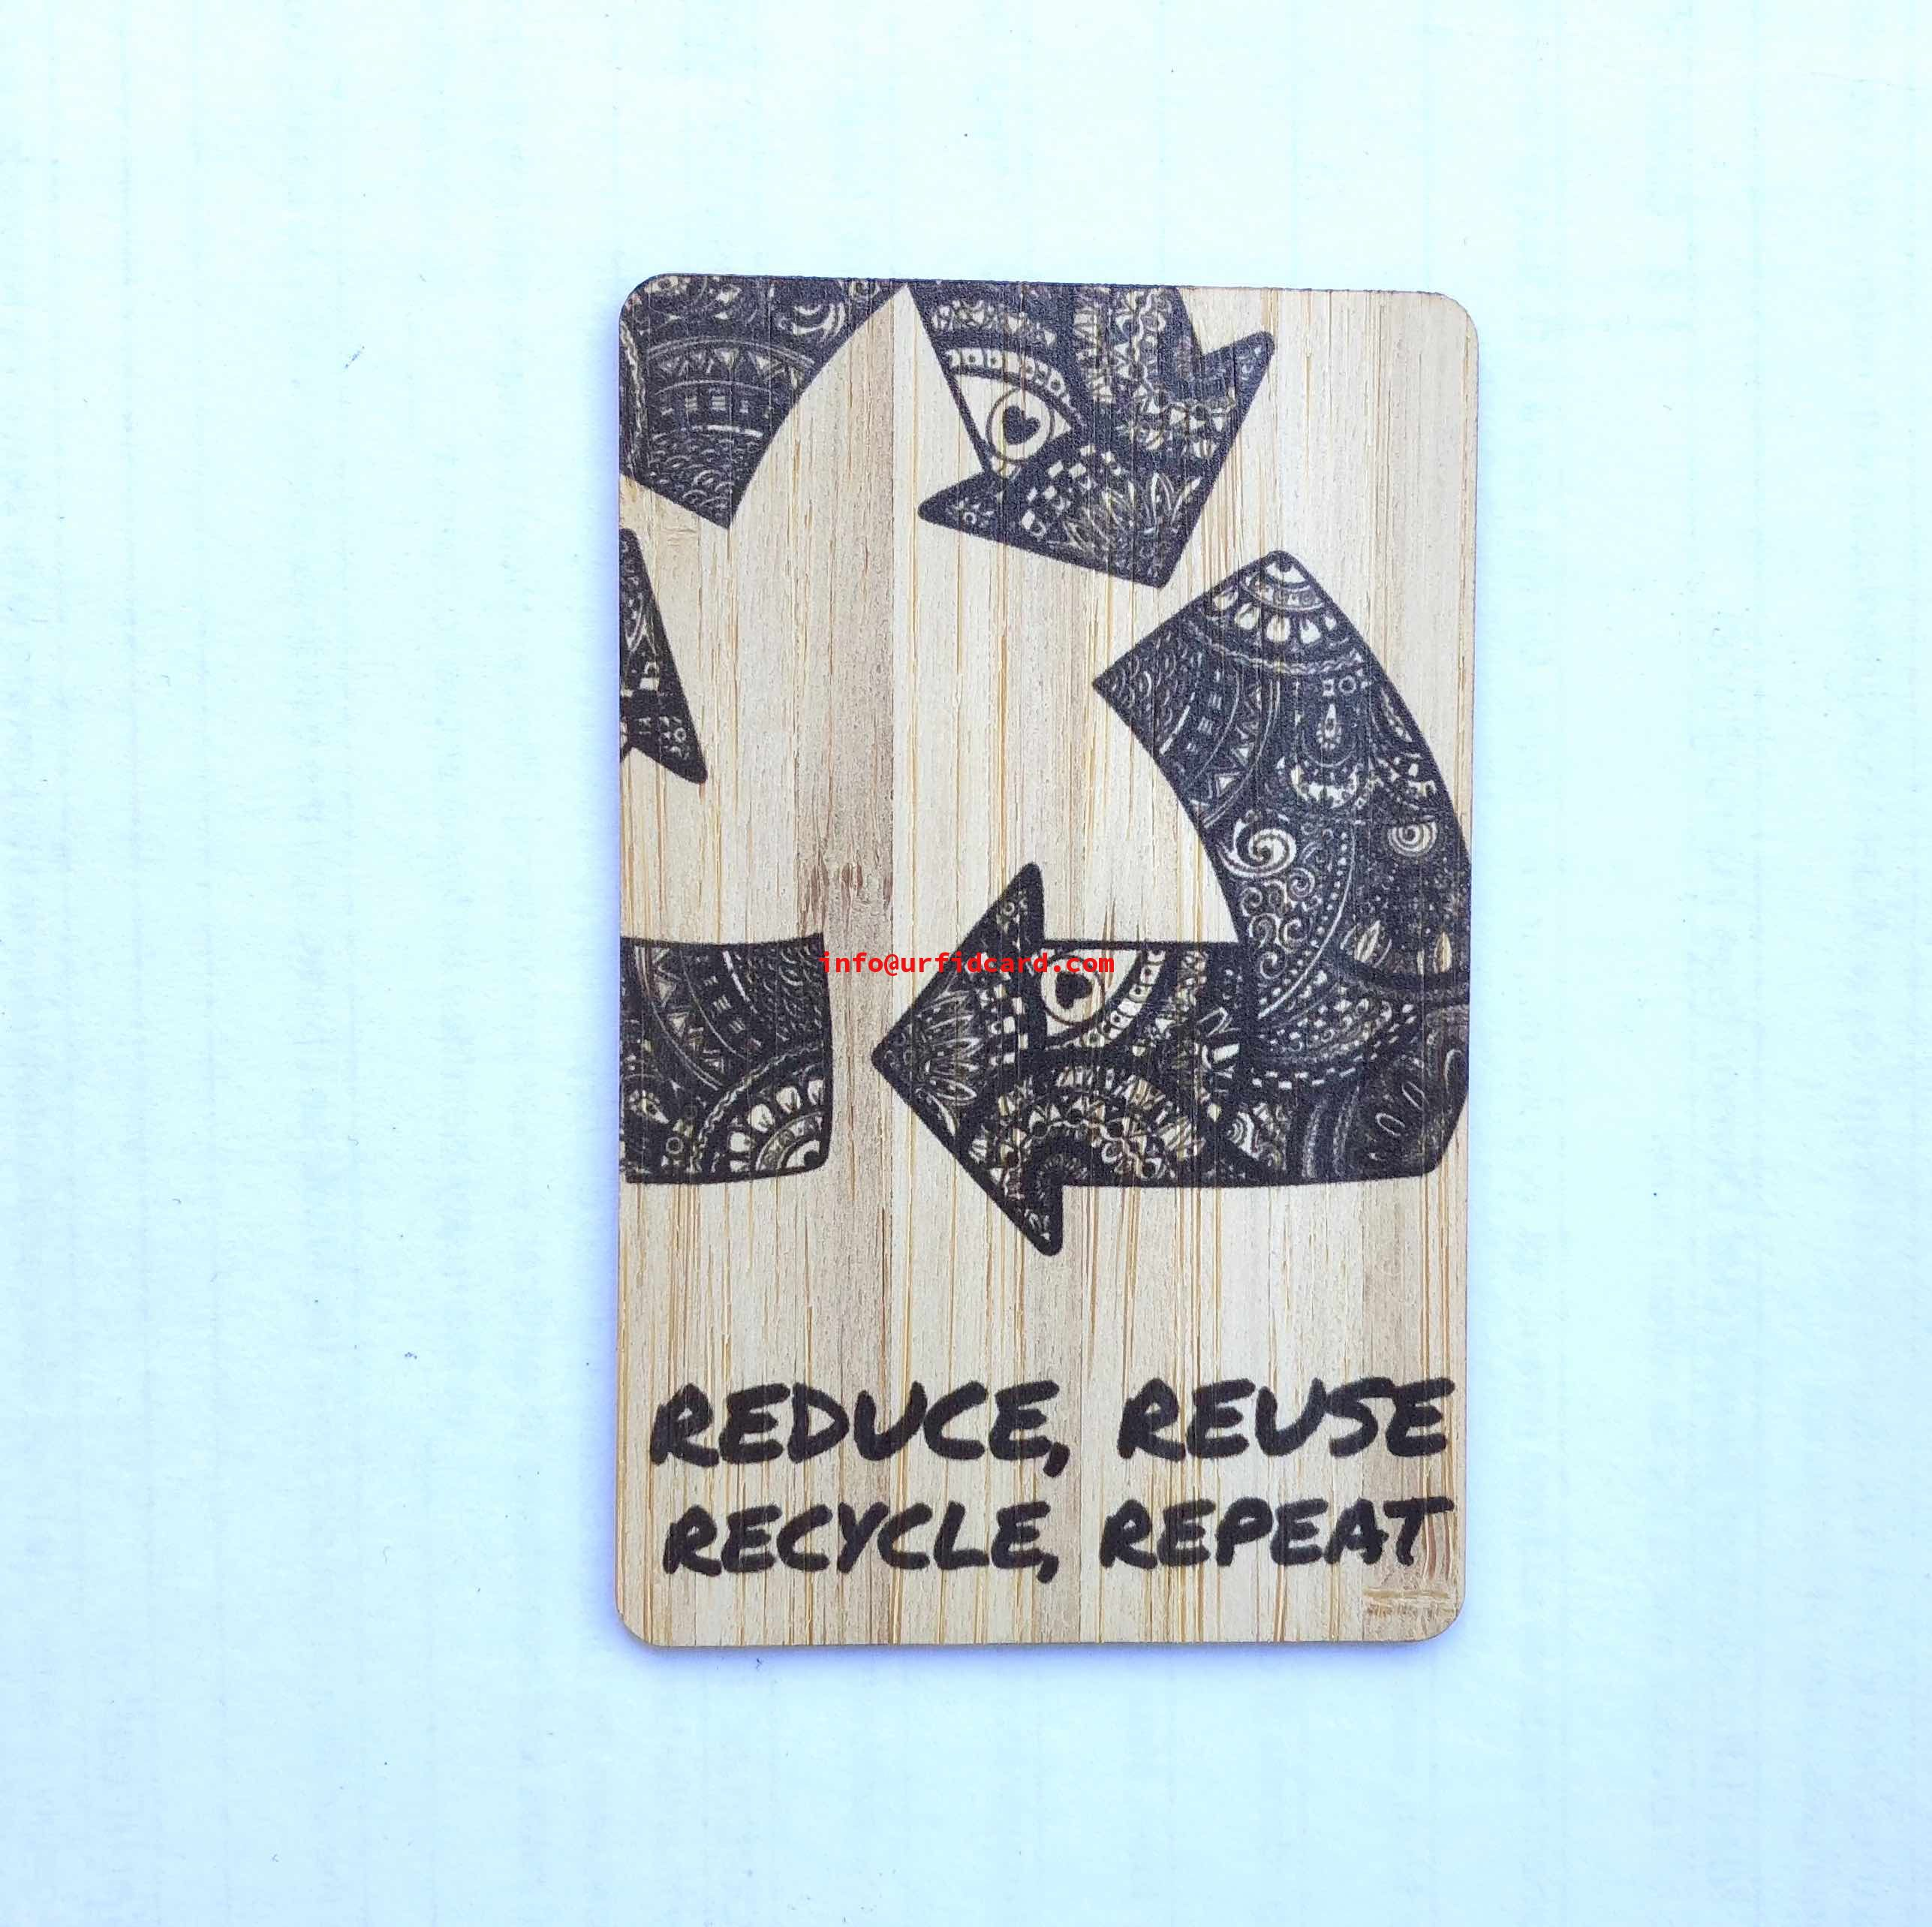 Reuse, Recycled, Repeat and Reduce Eco Hotel Key Cards